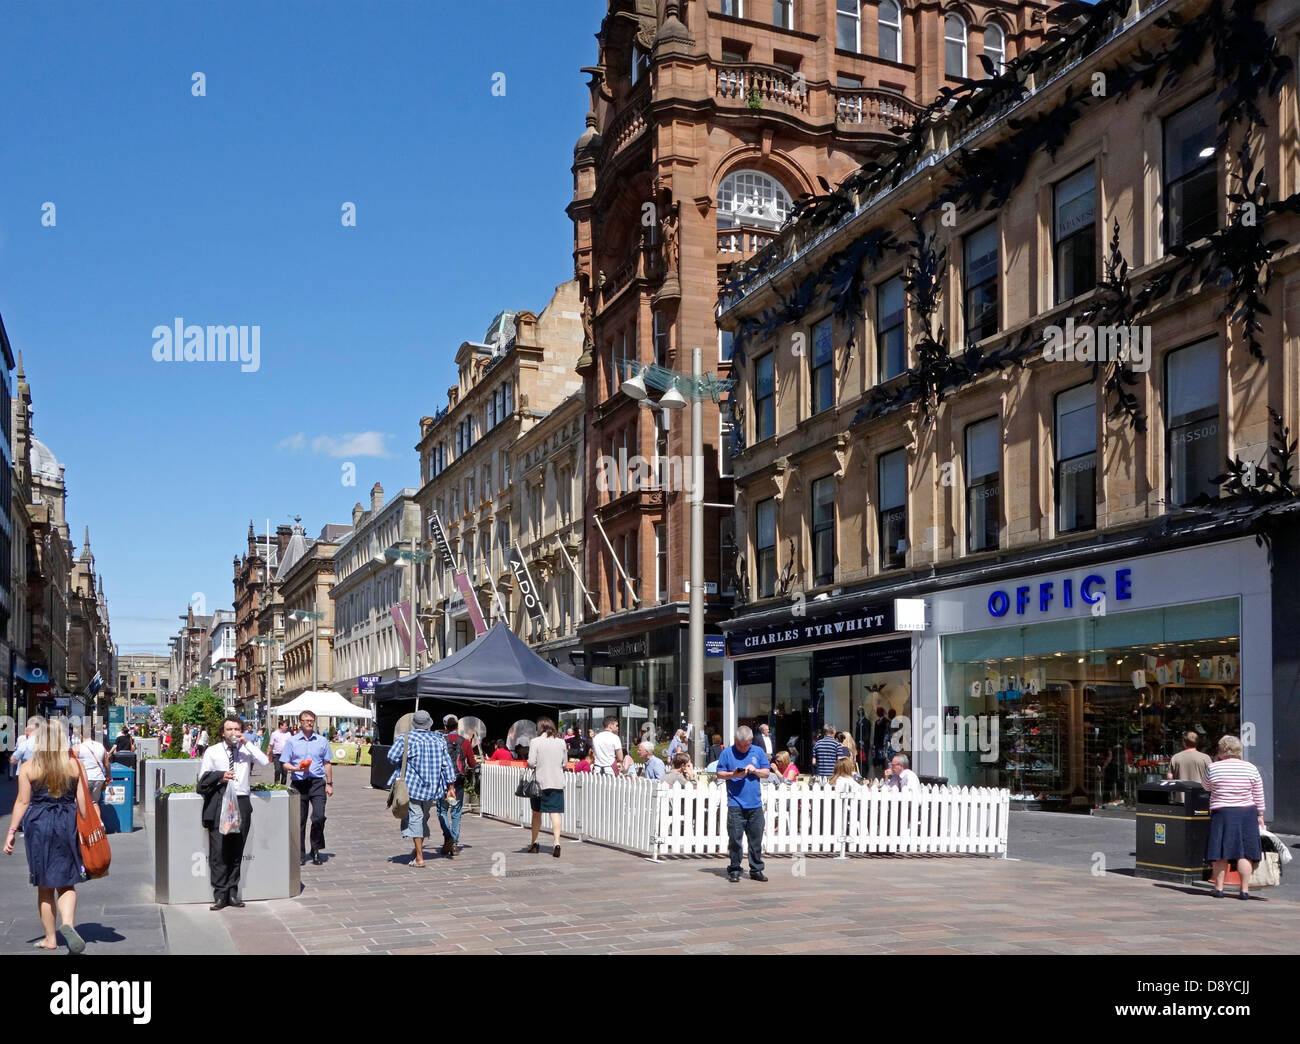 Buchanan Street in Glasgow Scotland on a busy day with shoppers and visitors enjoyind food and drink outside. - Stock Image